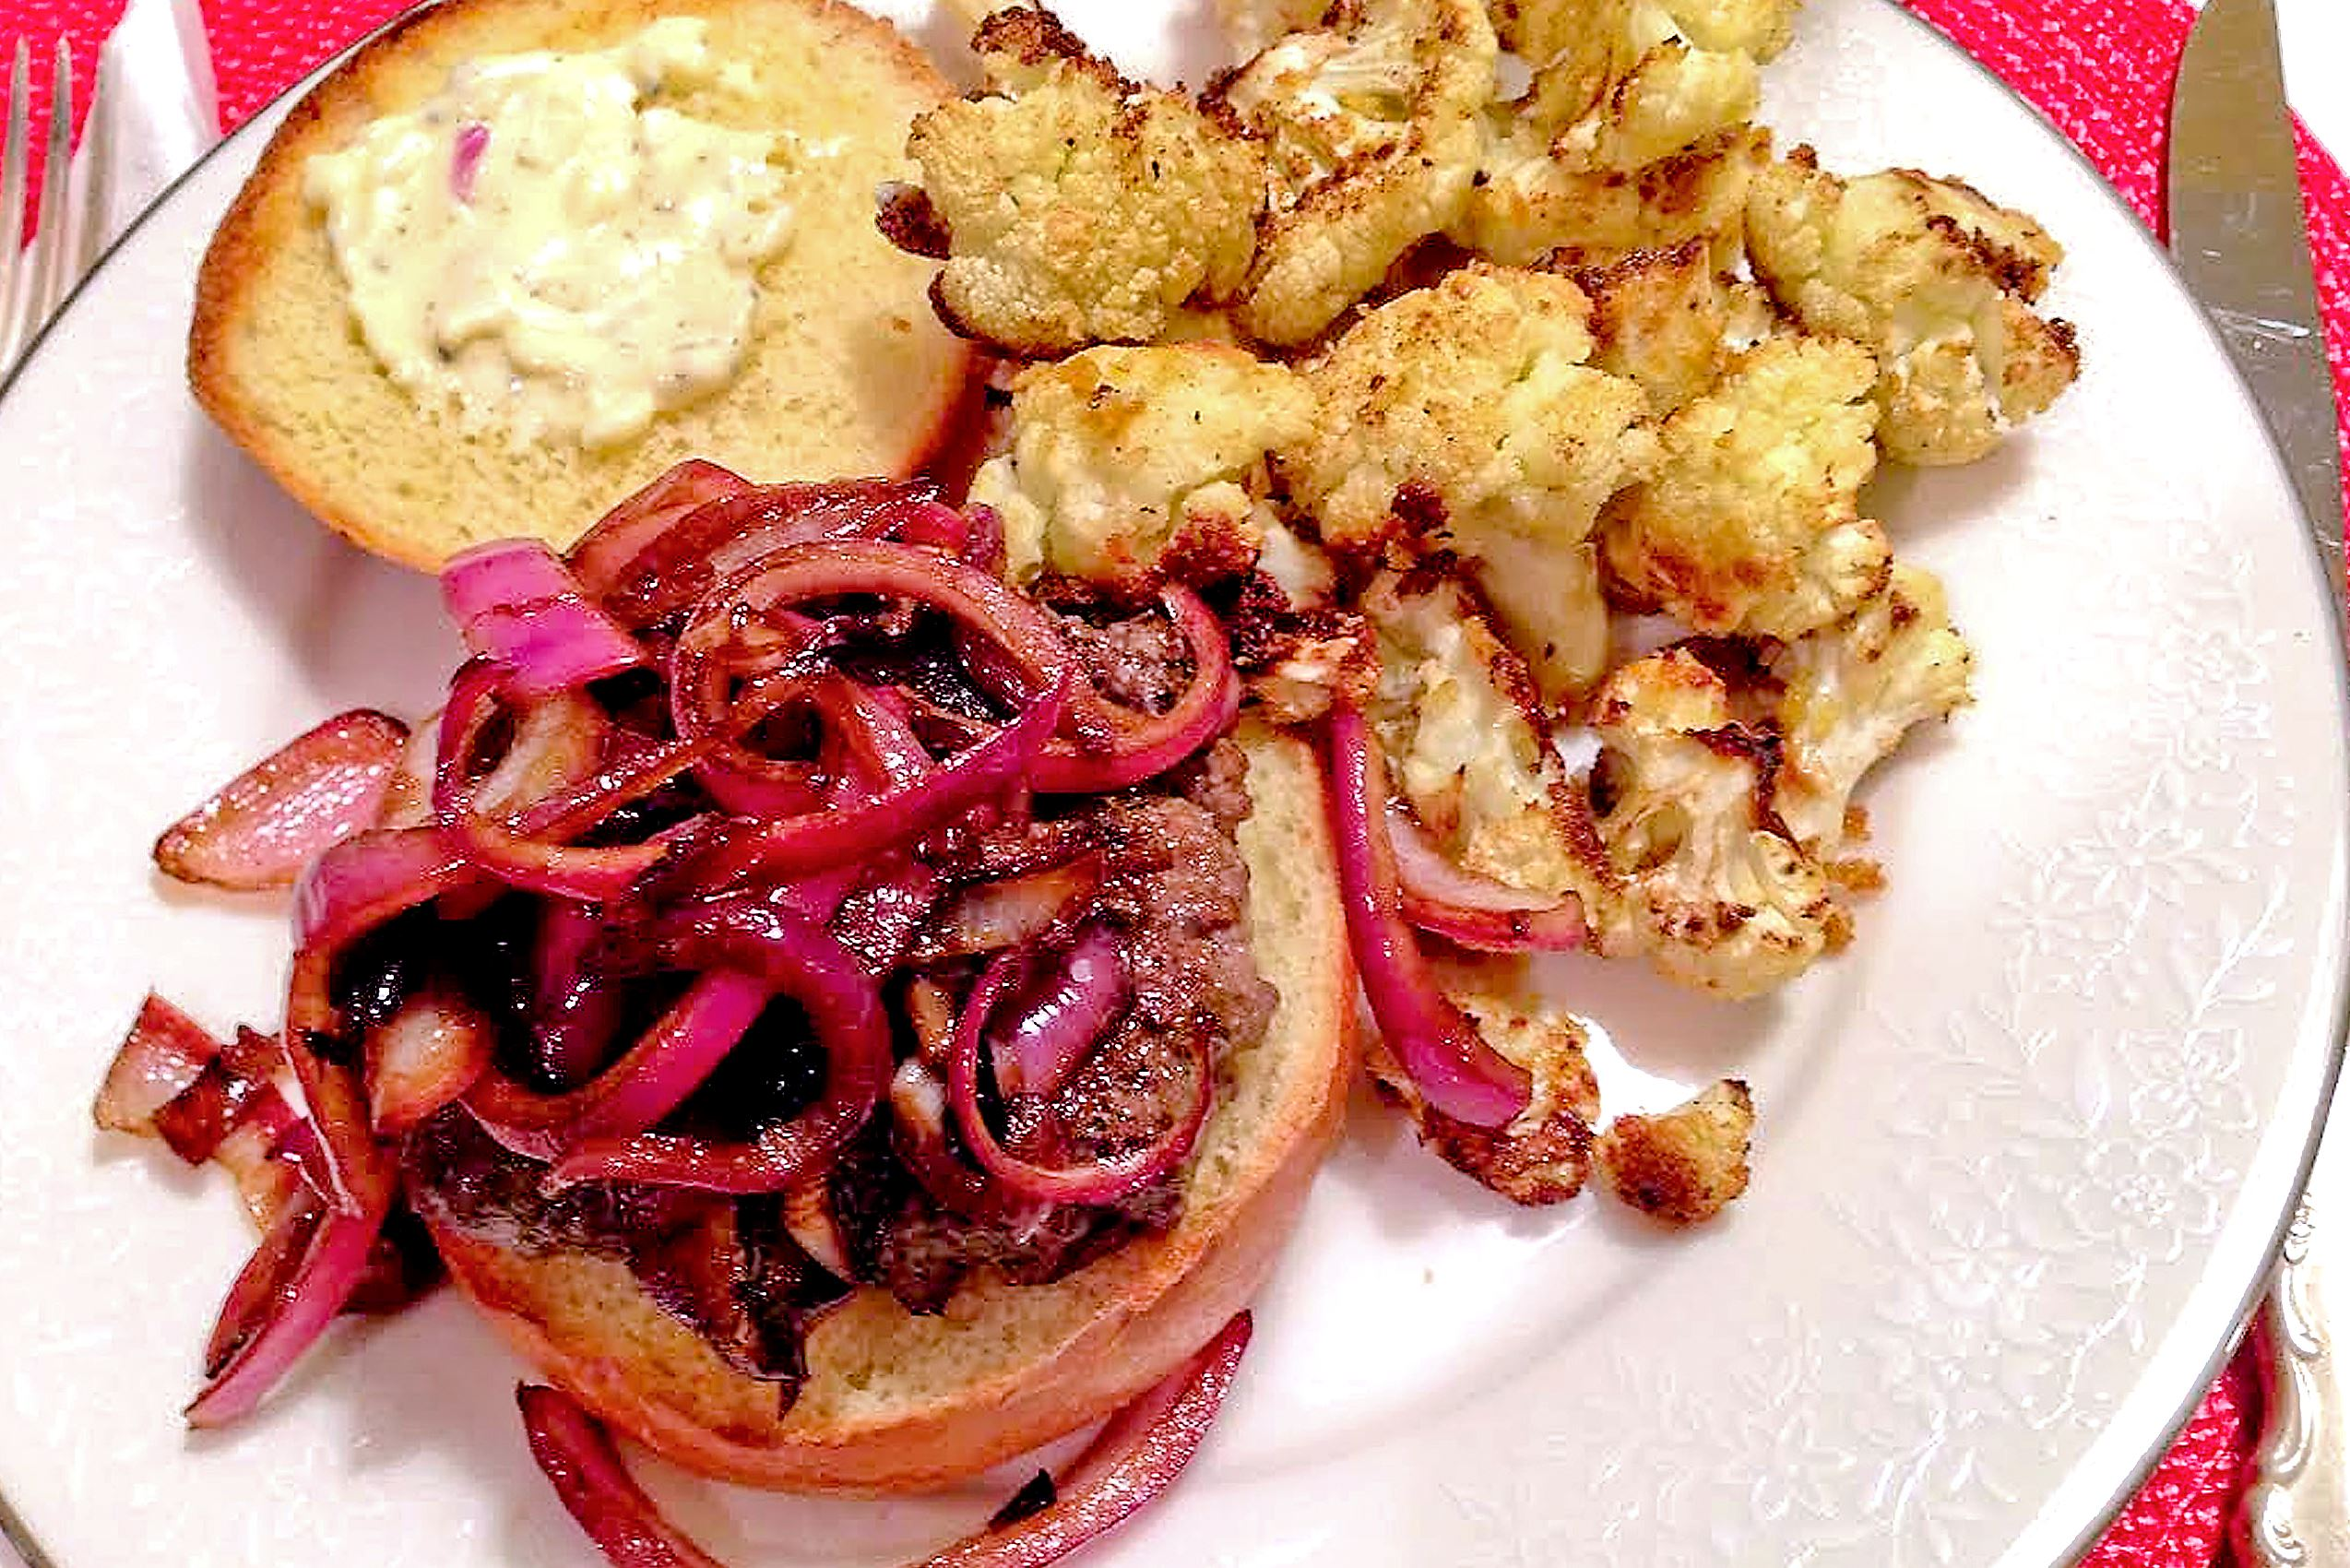 dinnerinabox0309-carmelized-onion Caramelized Onion Burger with Garlic Aioli and Crispy Cauliflower by HelloFresh.